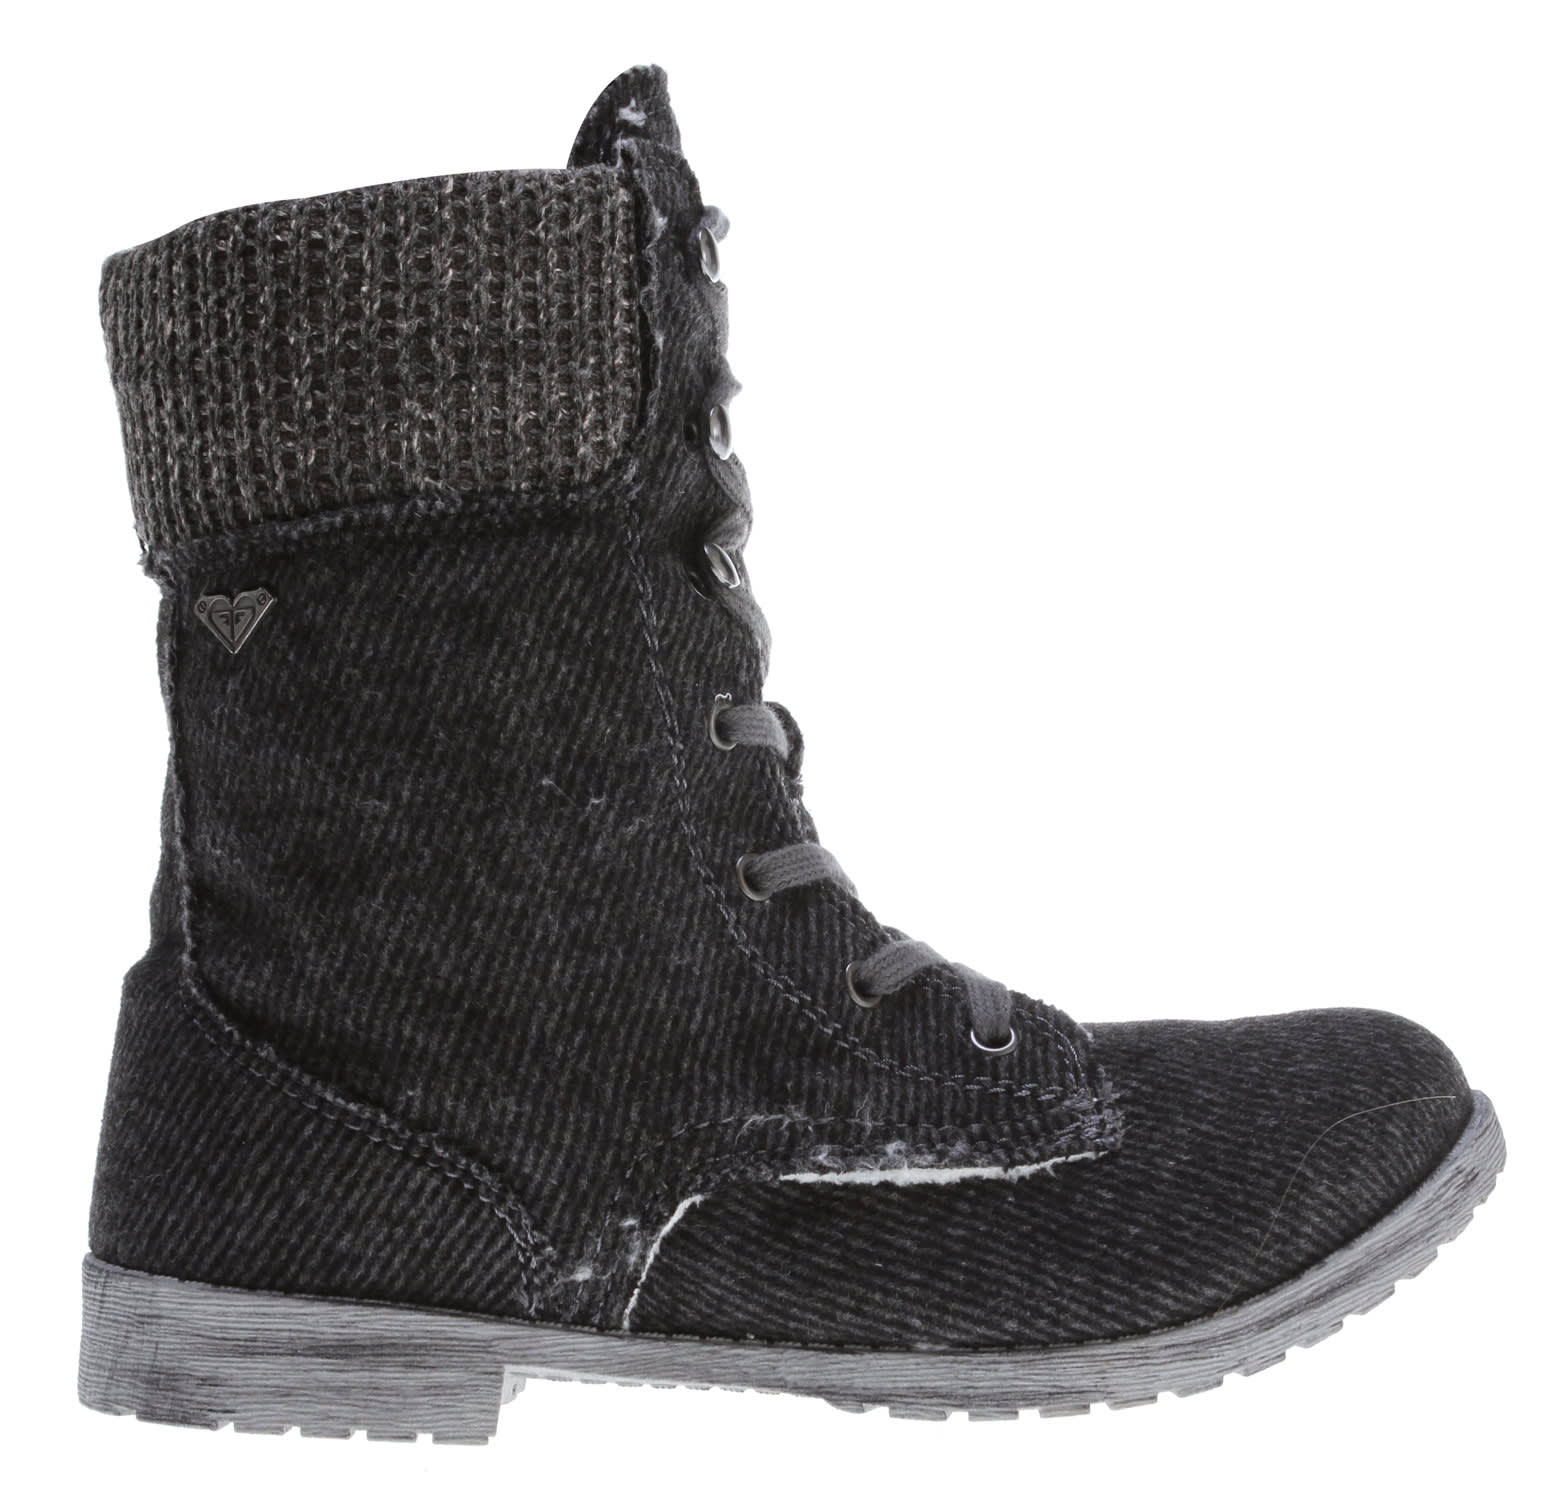 On Sale Roxy Denver Boots Womens Up To 65 Off